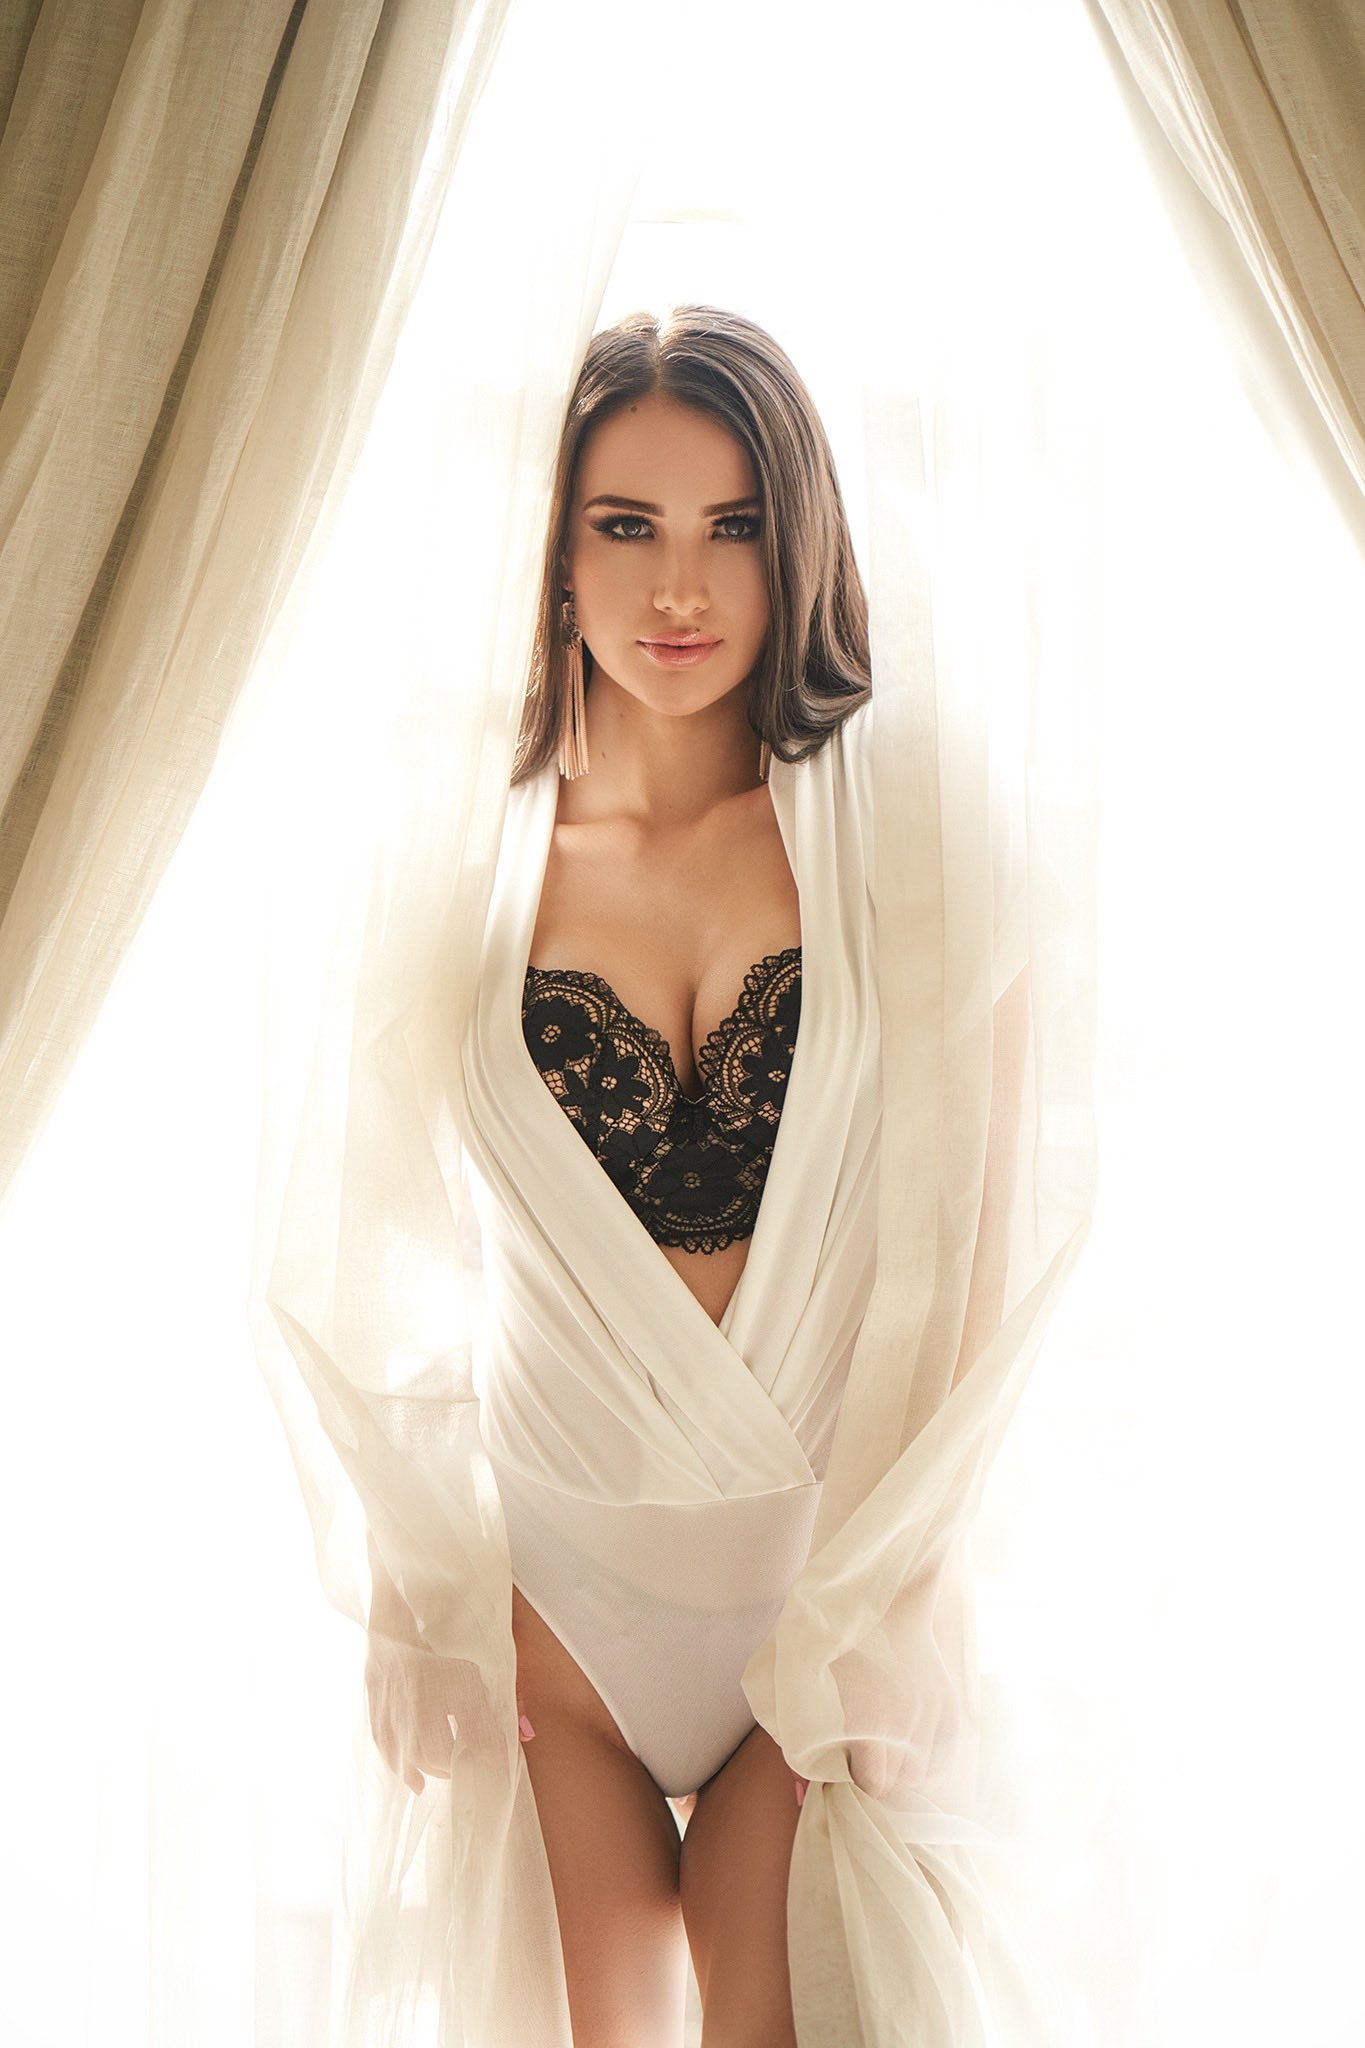 Meet Anita Meyer in our SA Babes feature